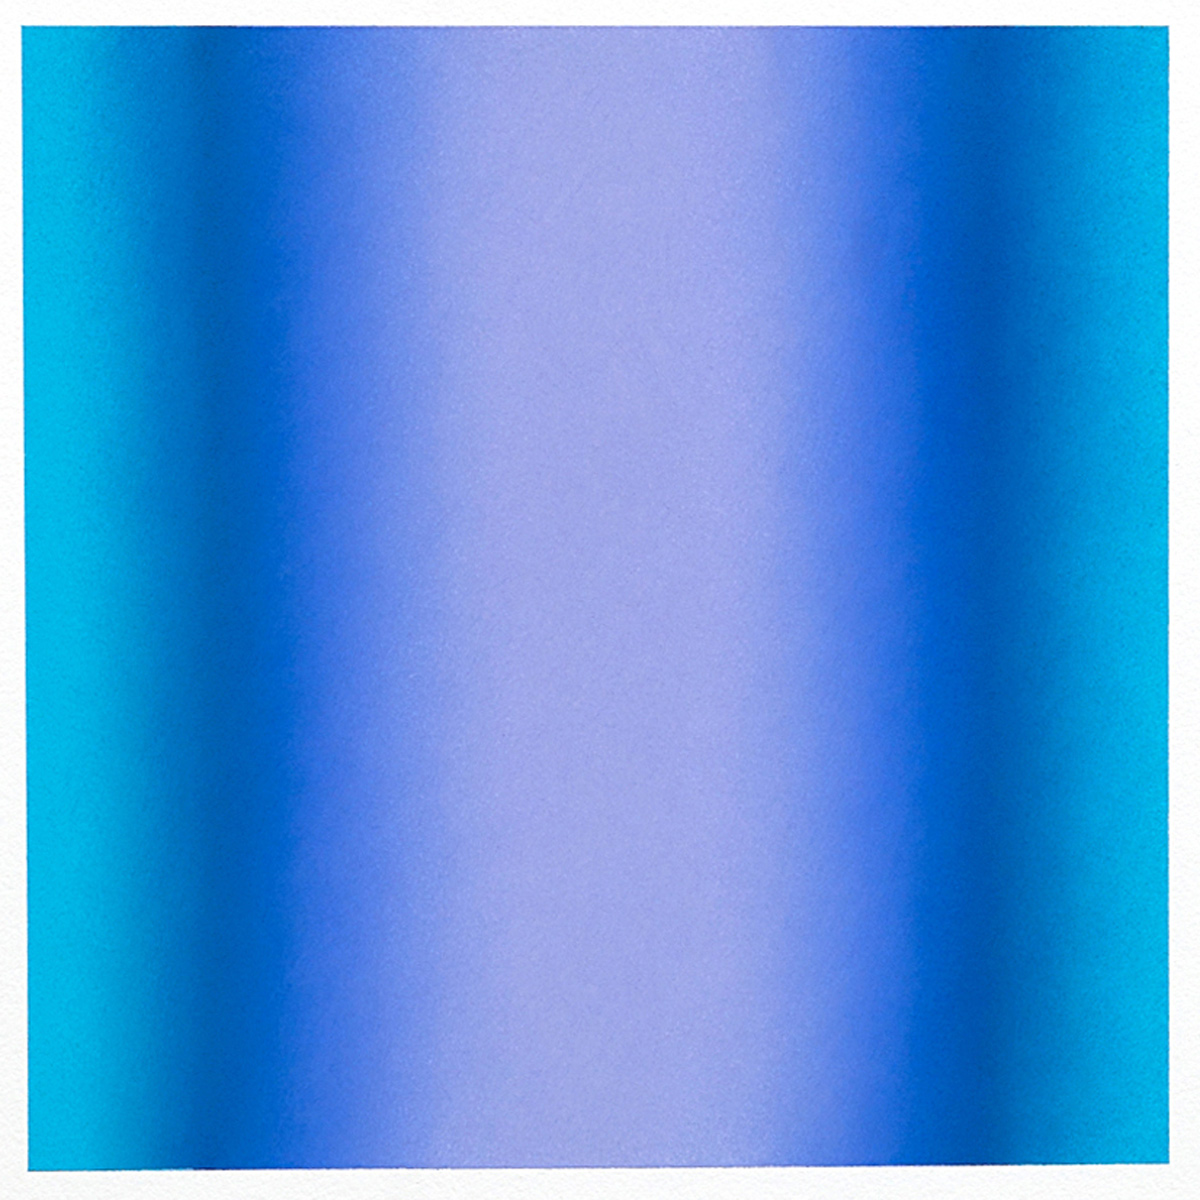 Cool-Light Blue-Violet, Warm-Light Cool-Light Series, 2012, pastel on paper, image: 14 x 14 in. (36 x 36 cm.), sheet: 30 x 22 in. (76 x 56 cm.)